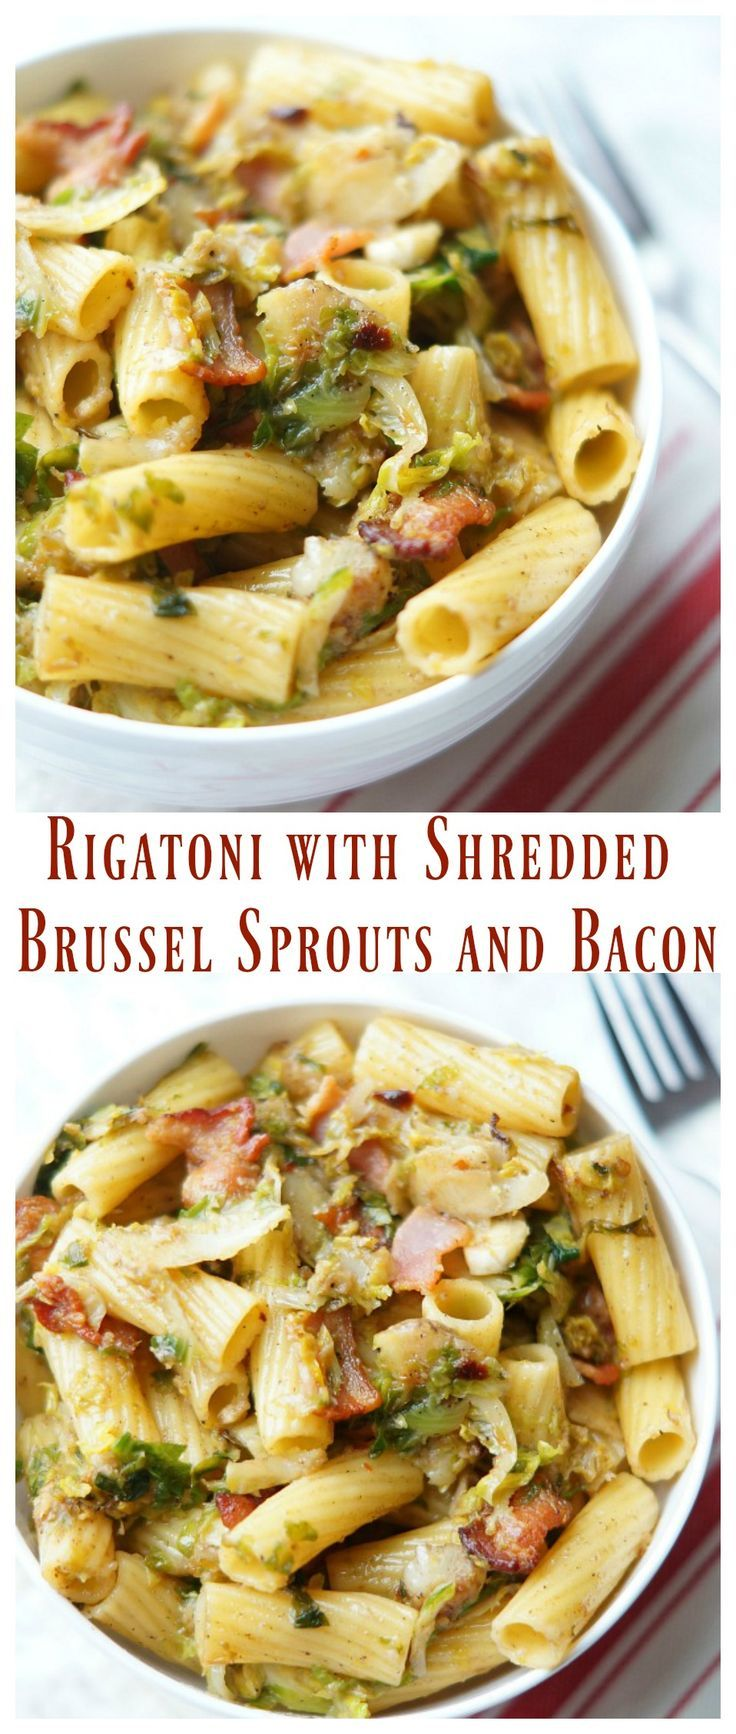 Rigatoni with Shredded Brussel Sprouts with Bacon